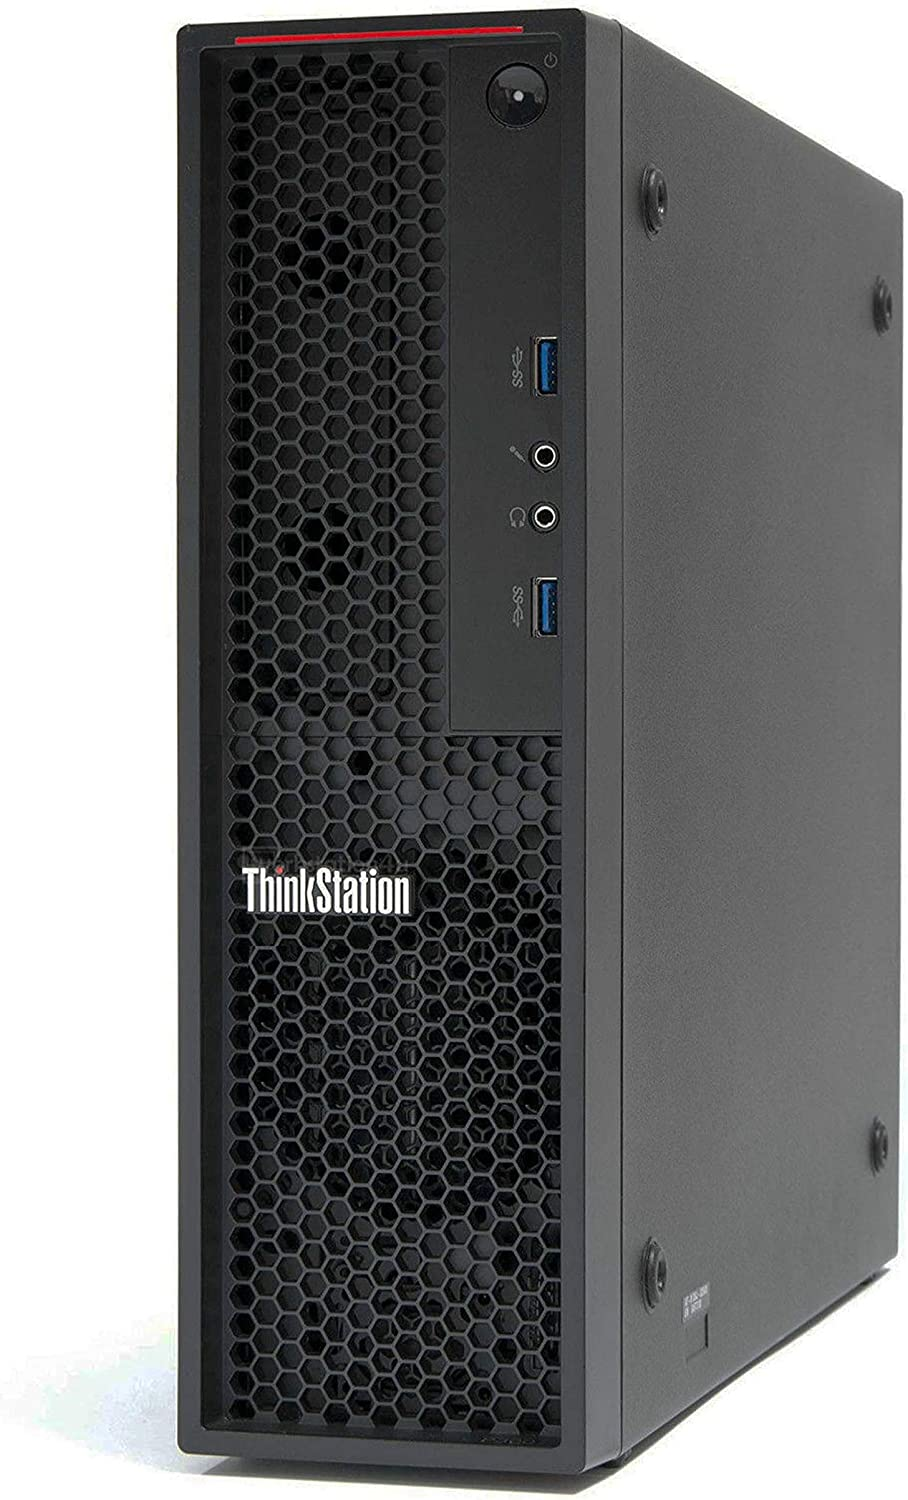 Lenovo ThinkStation P300 Small Form Desktop, Quad Core i7 4770 3.4Ghz, 32GB DDR3, 1TB Hard Drive, Windows 10 Pro (Renewed)